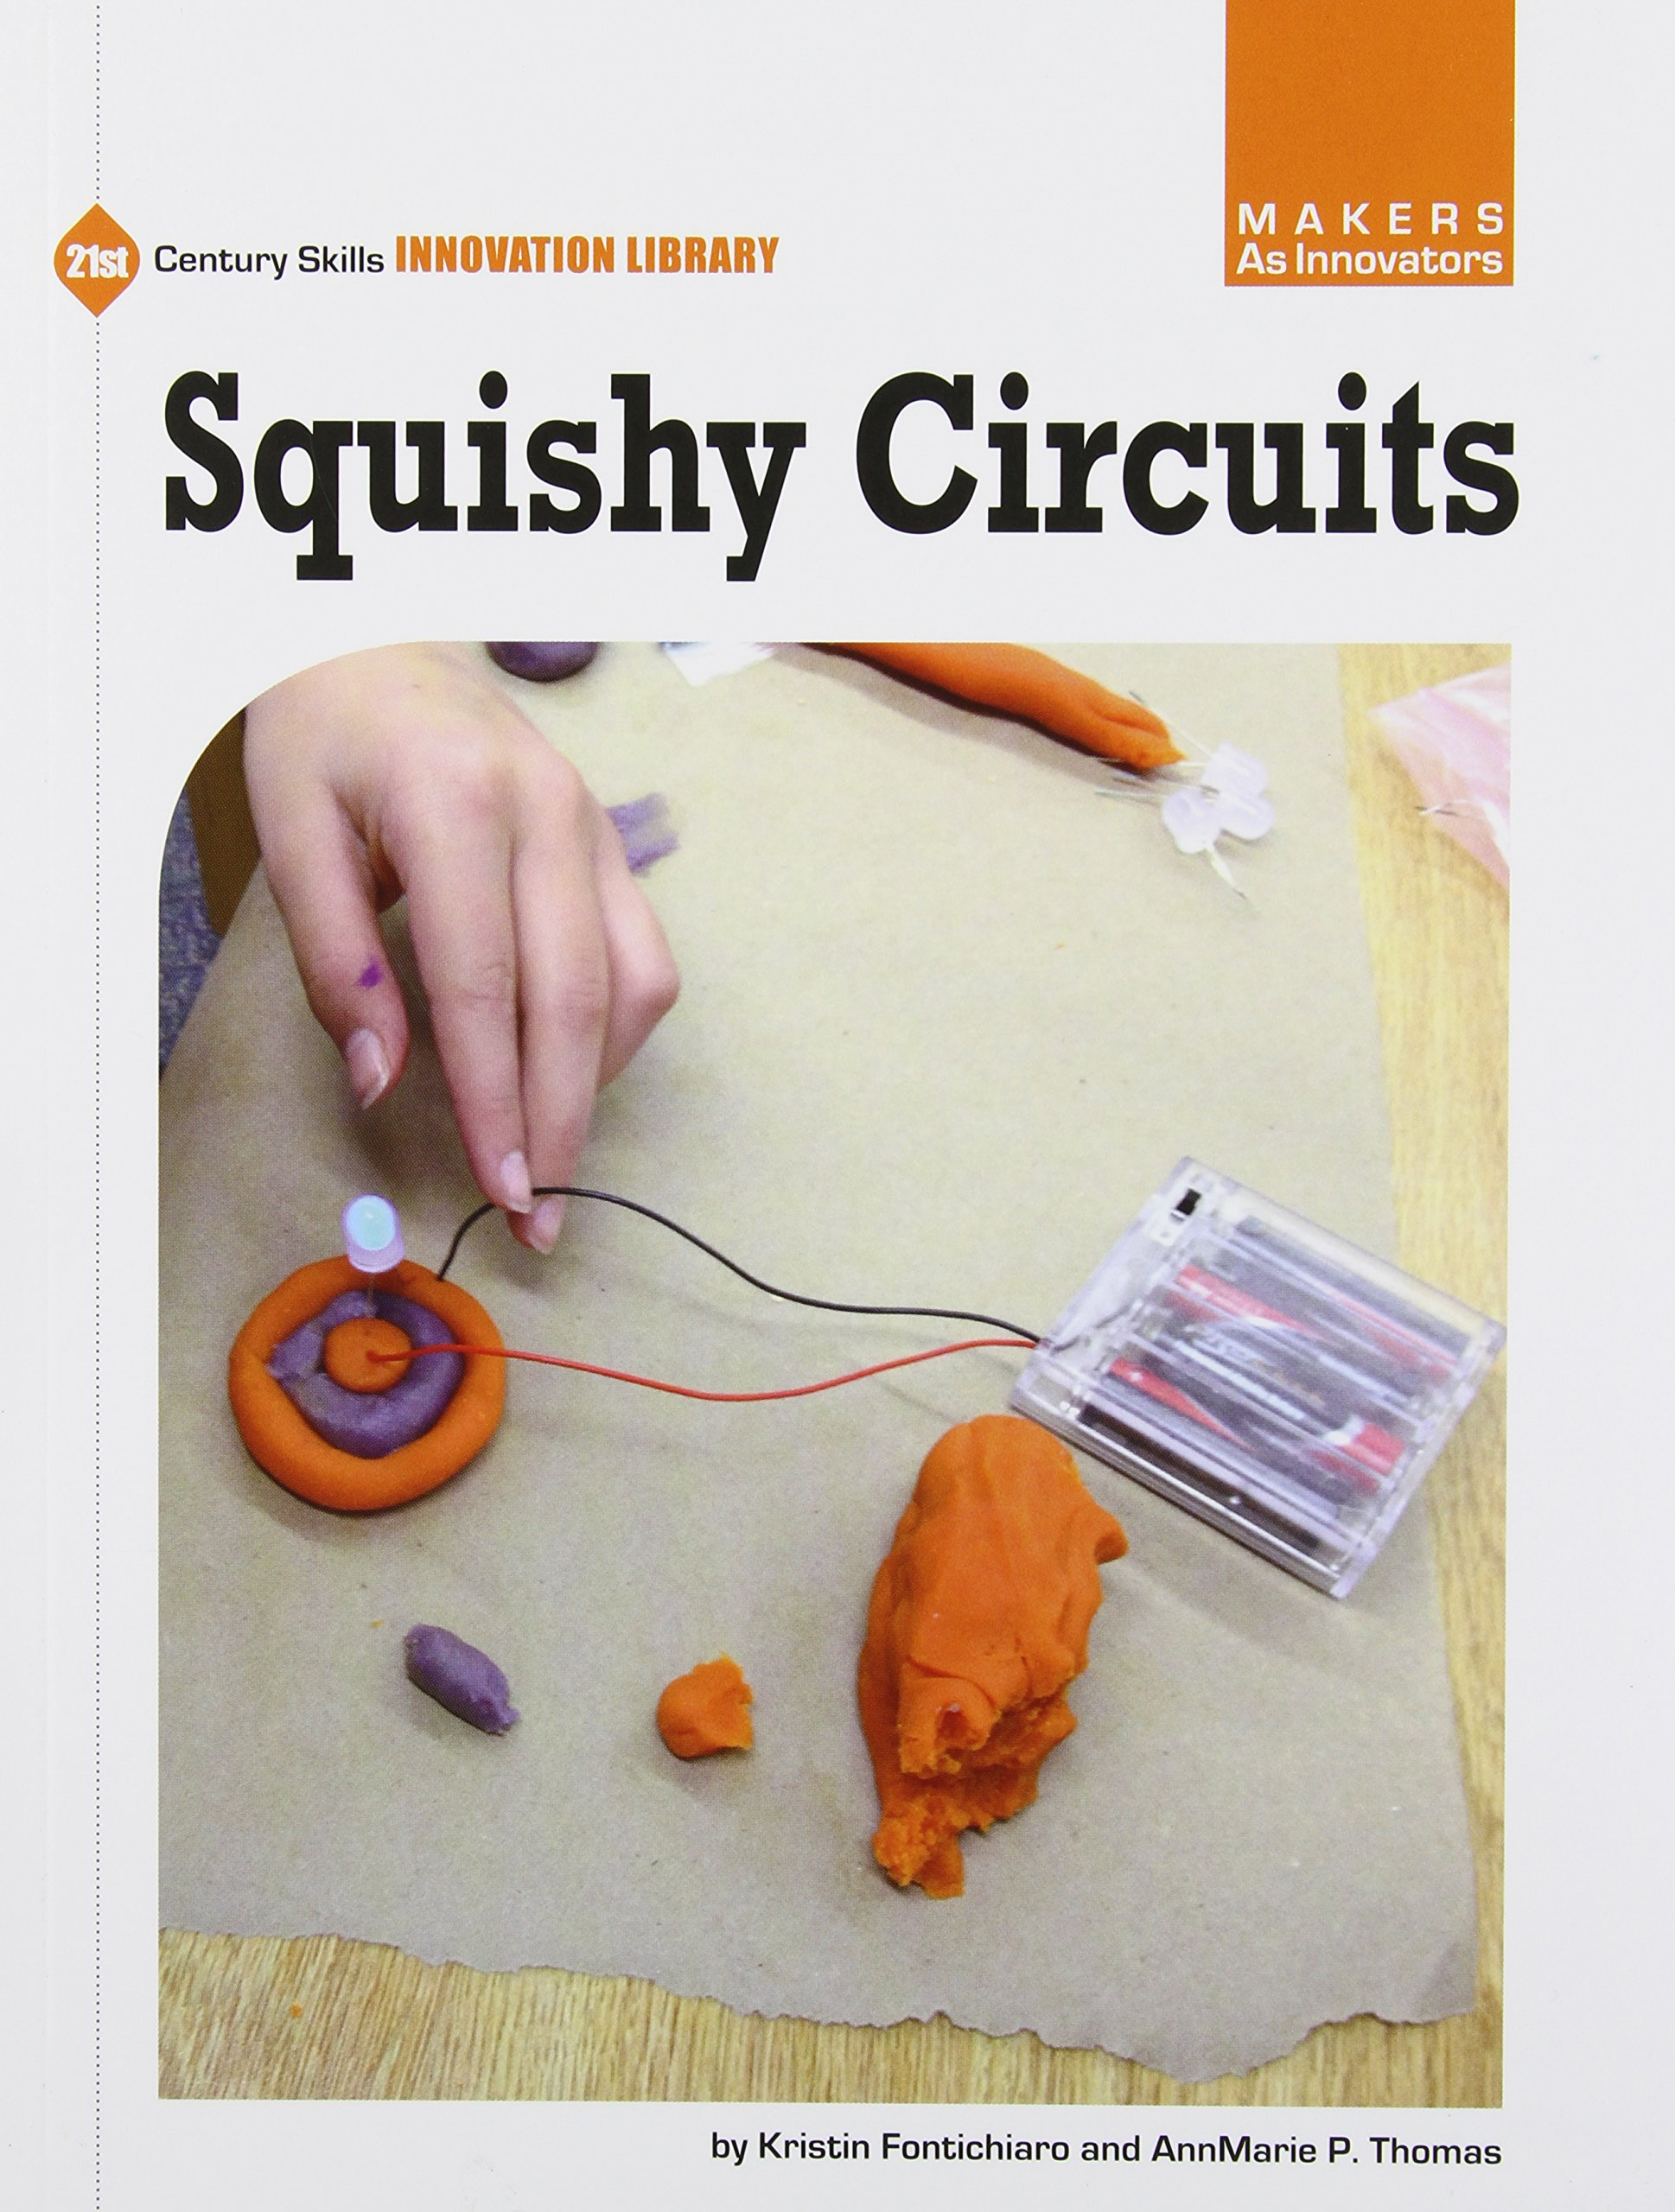 Squishy Circuits (21st Century Skills Innovation Library: Makers As Innovators)